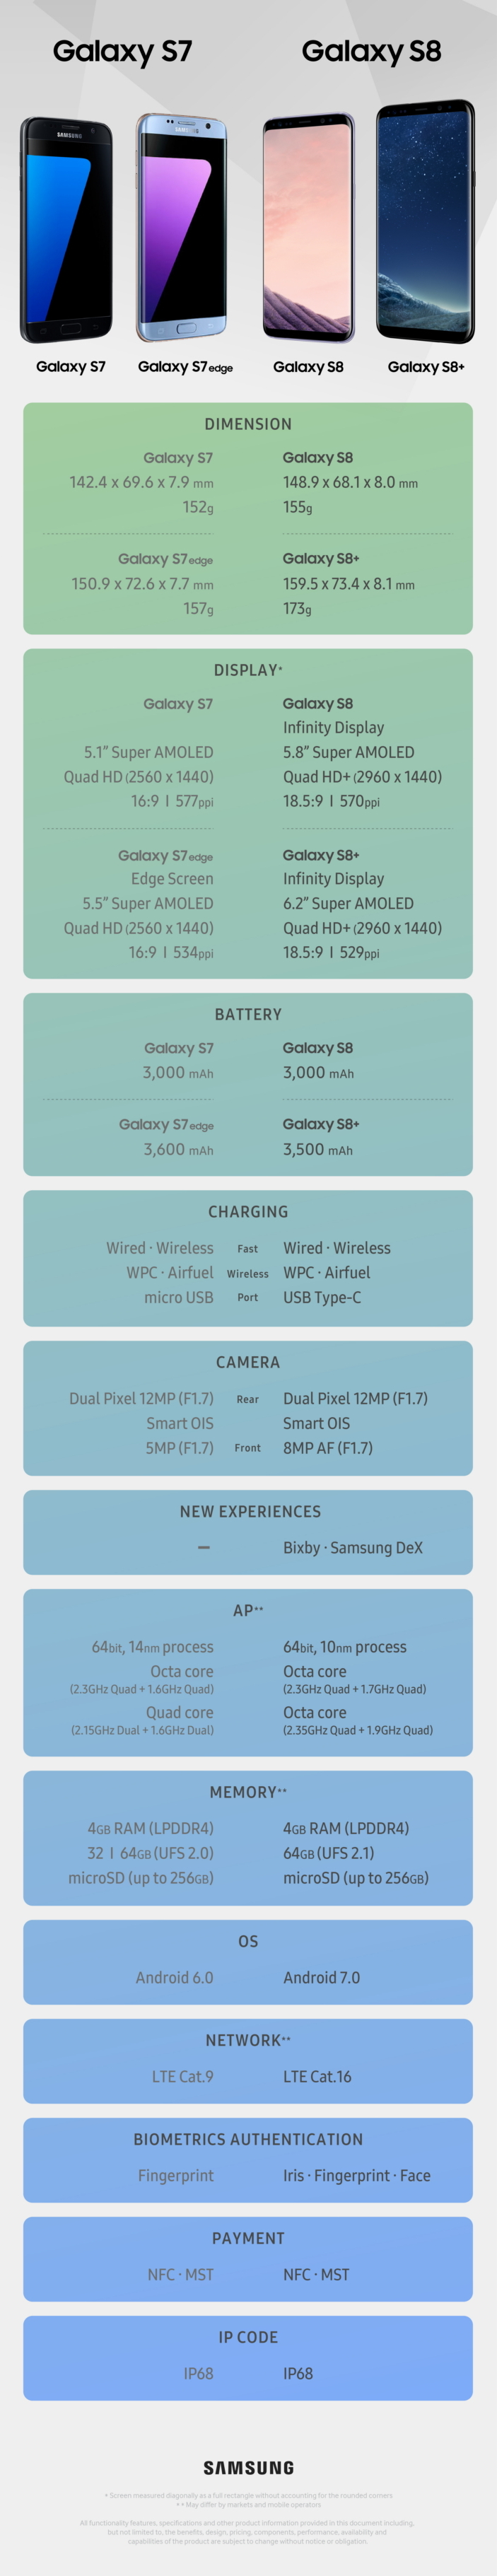 Infographic released by Samsung comparing specs of Samsung Galaxy S7 vs Samsung Galaxy S8